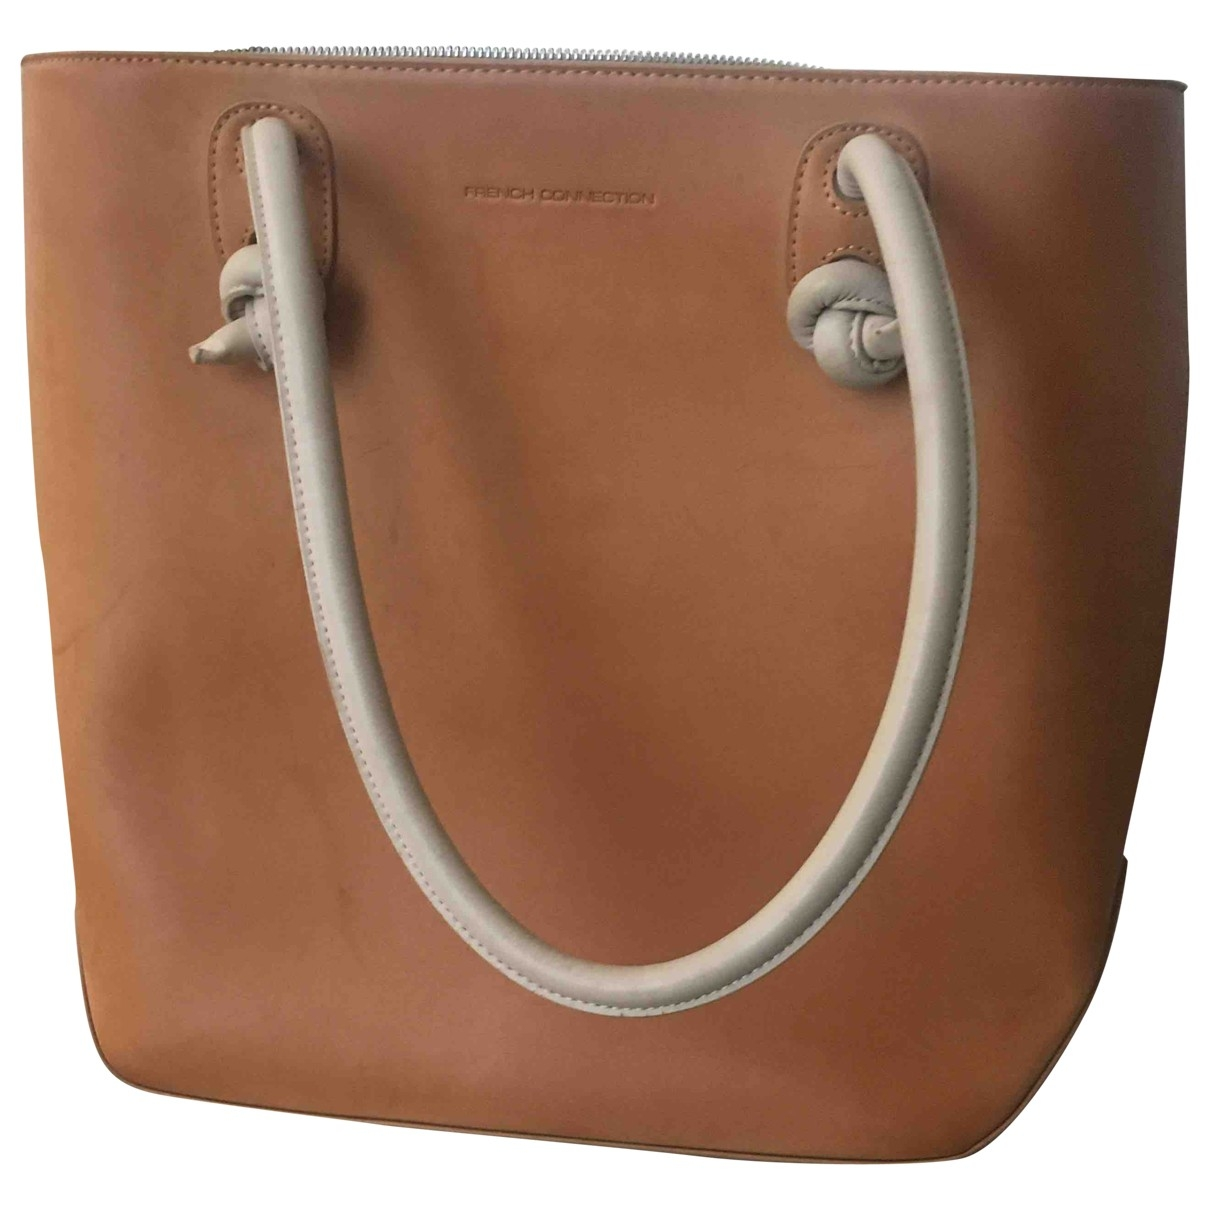 French Connection - Sac a main   pour femme - beige